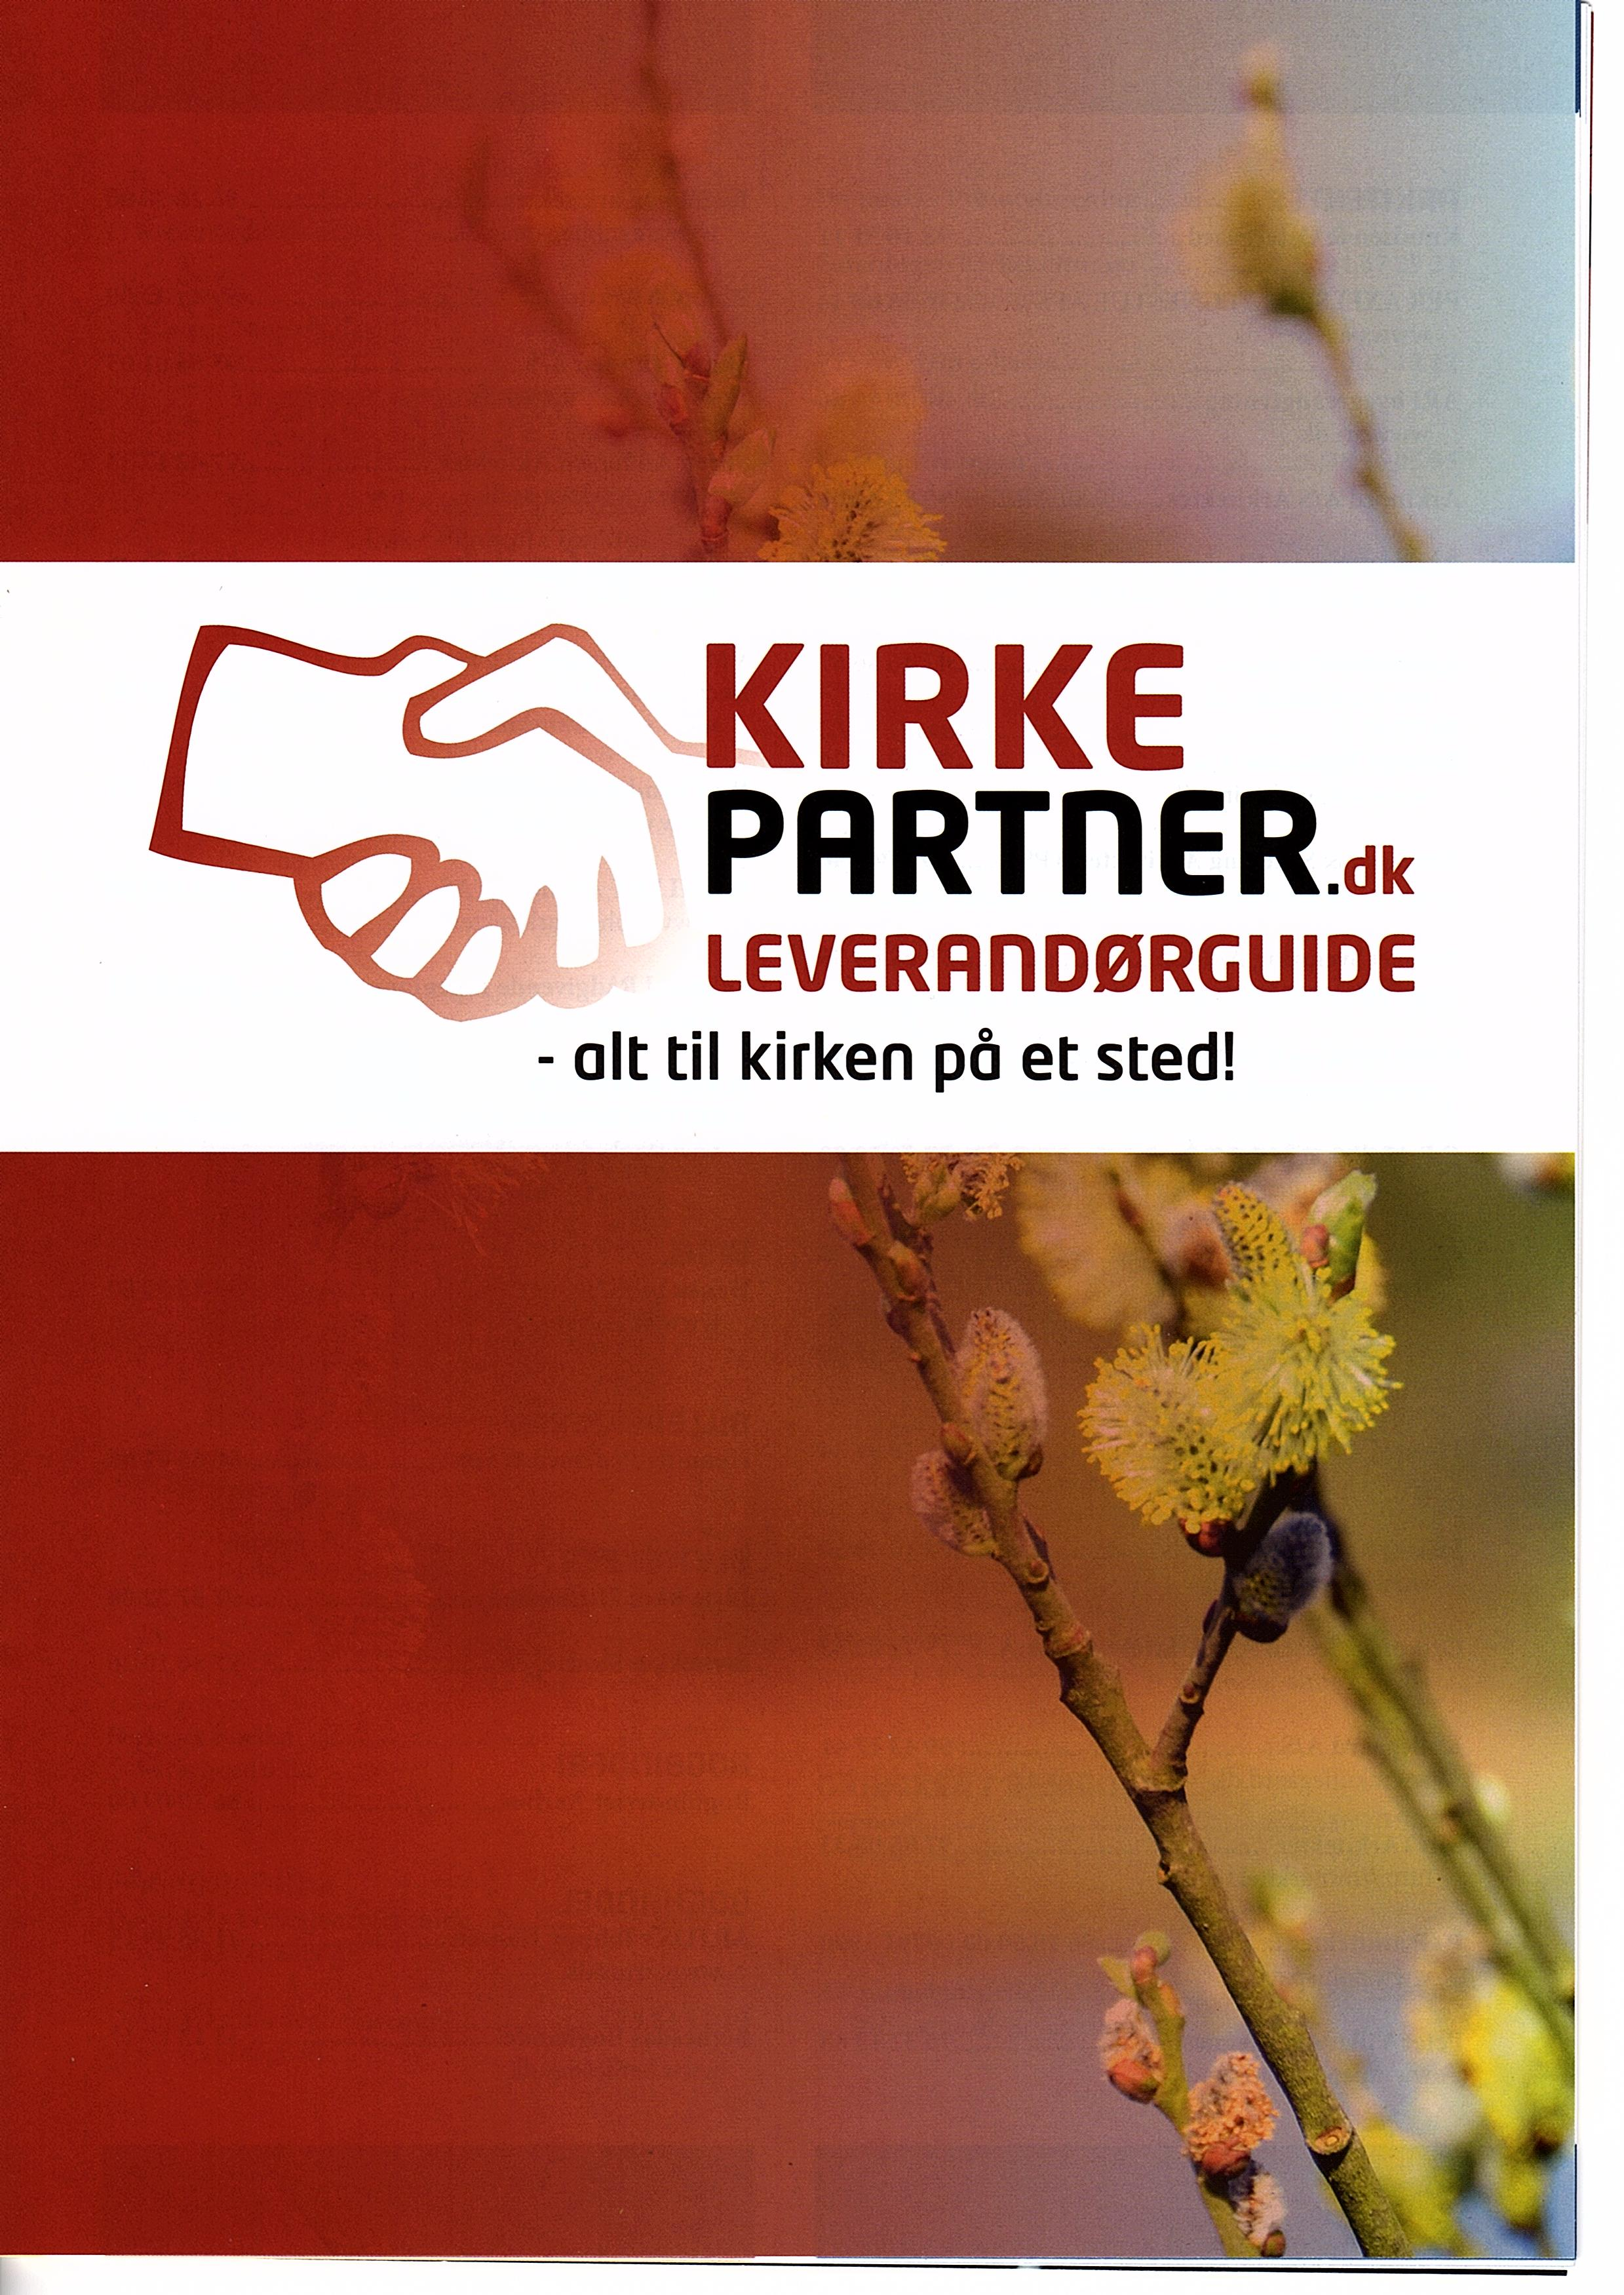 Kirkepartner